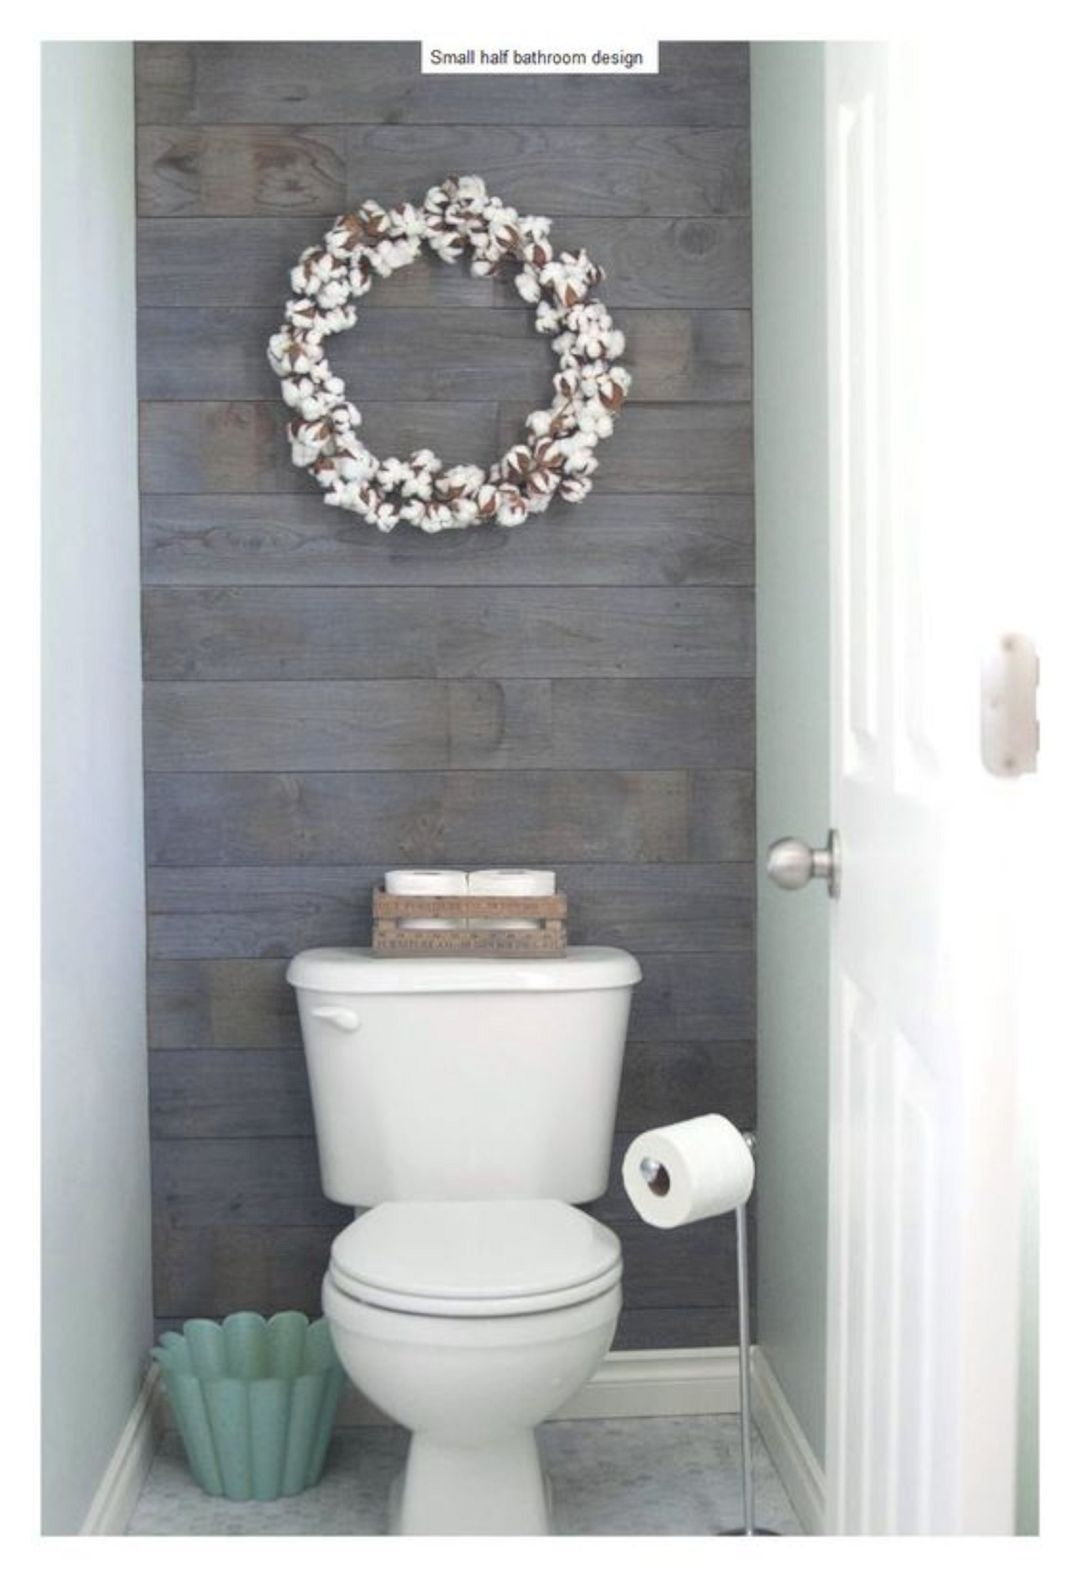 17 Awesome Small Bathroom Decorating Ideas With Images Half Bath Remodel Small Half Bathrooms Guest Bathroom Design